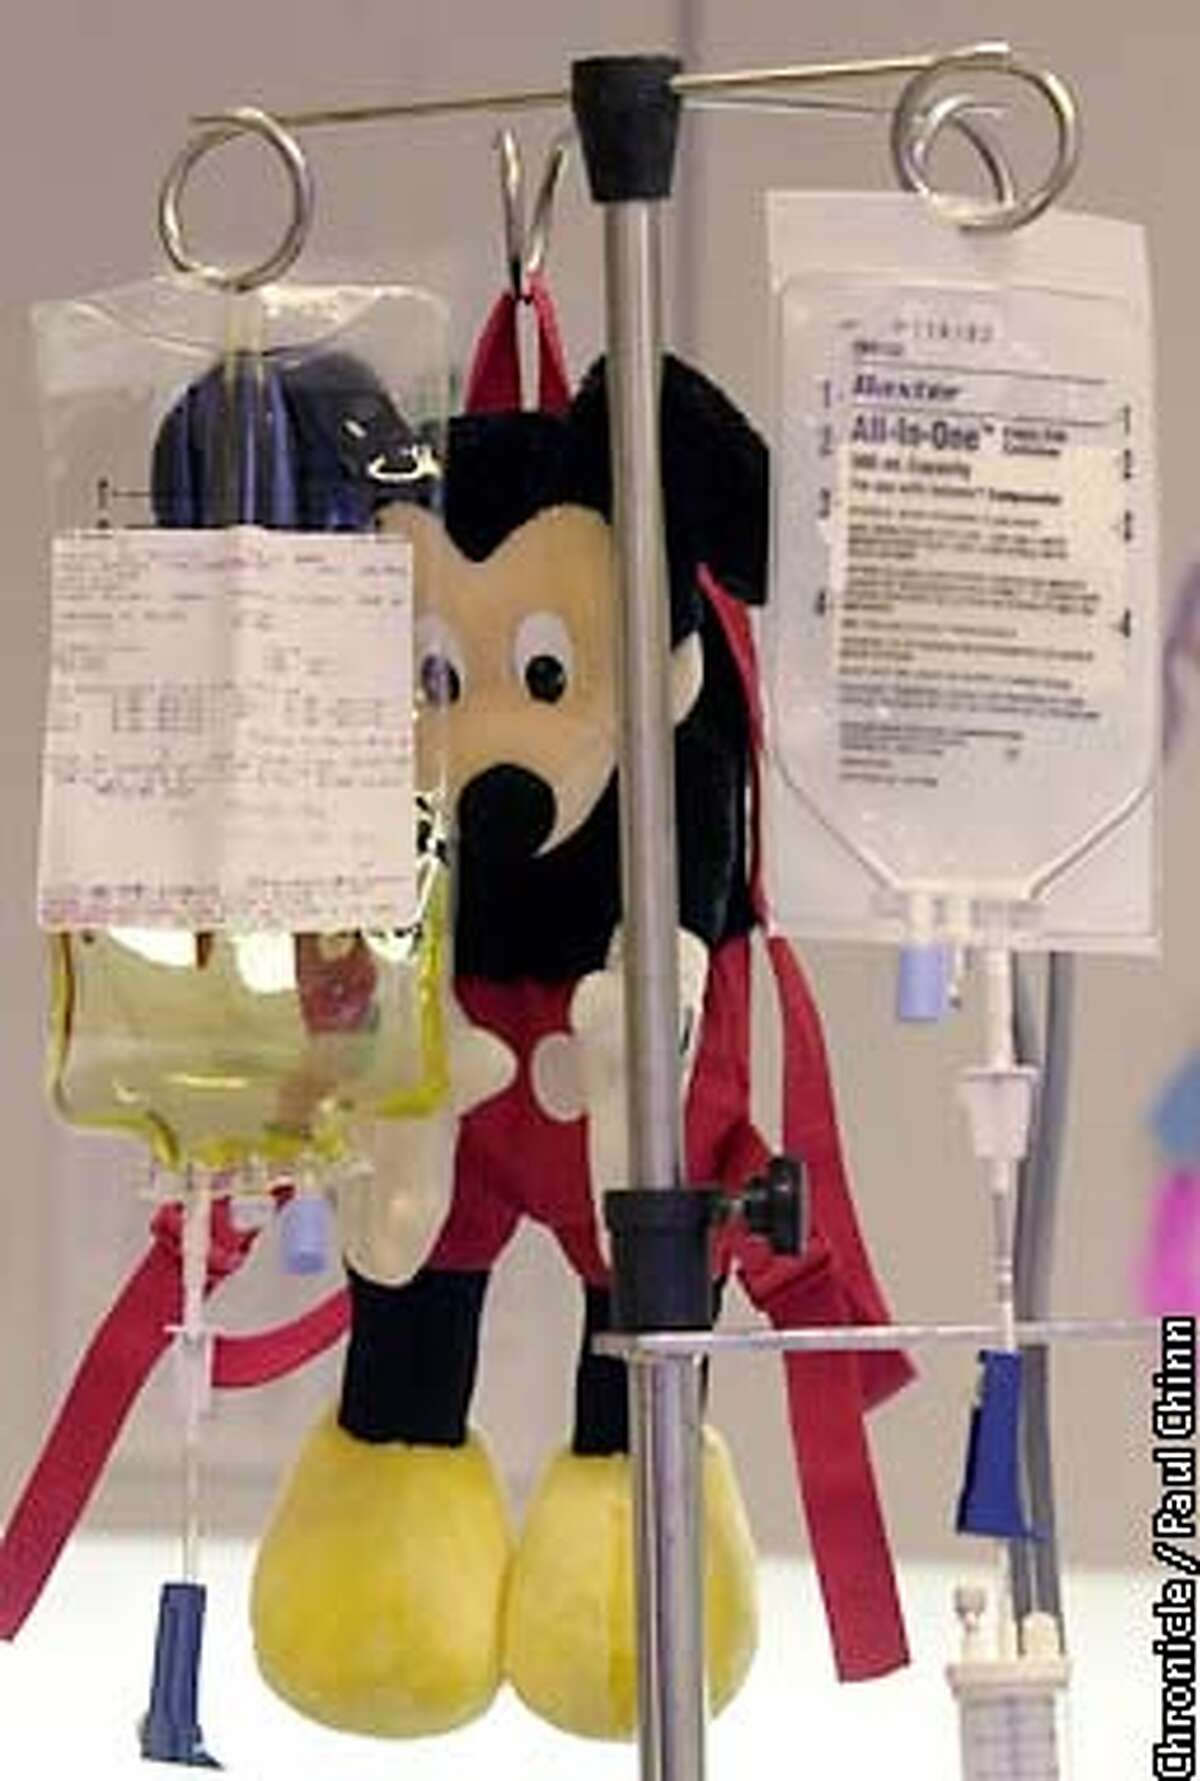 Mickey Mouse dangled next to an IV drip in the Magic Playroom of UCSF Children's Hospital. PAUL CHINN/S.F. CHRONICLE